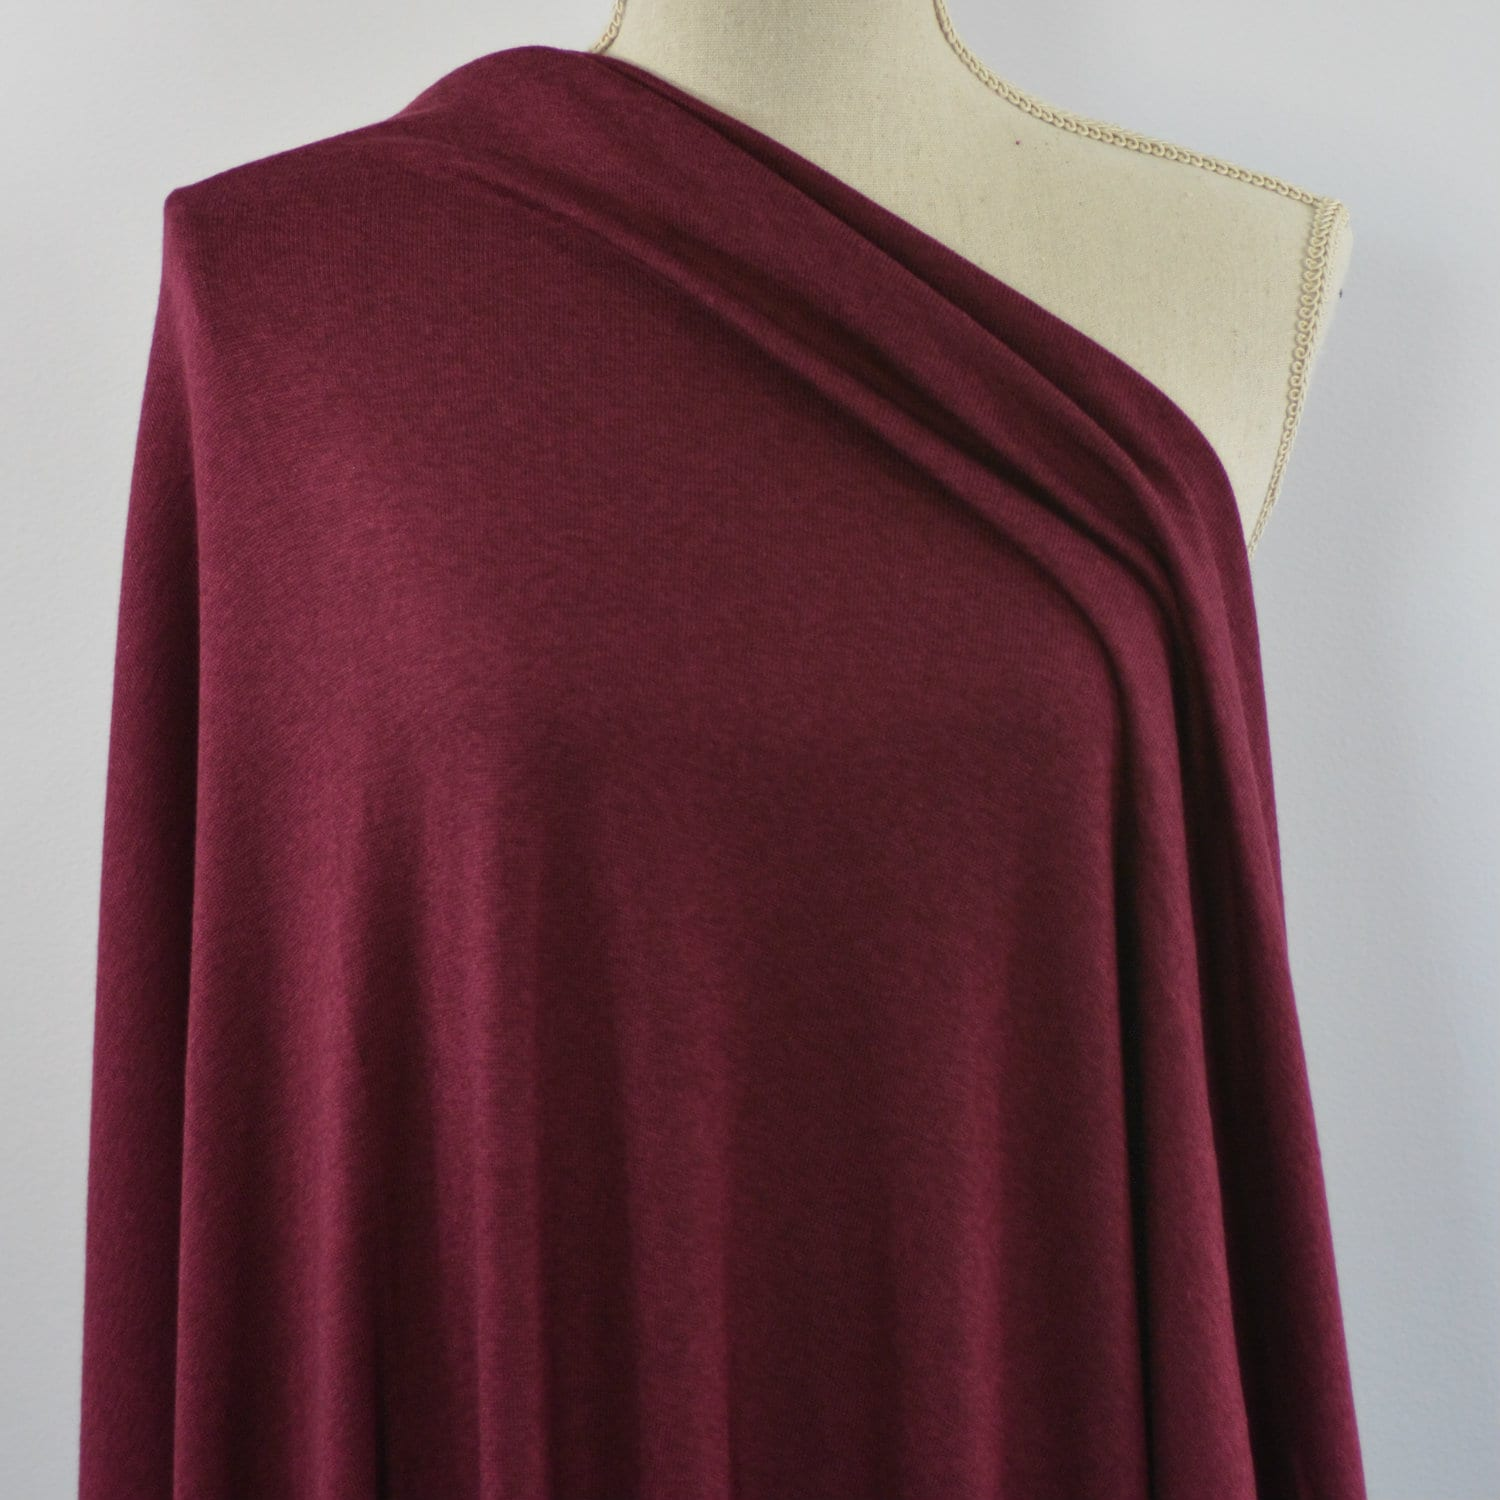 Rayon Cotton Modal Sweater Knit Red Mahogany 1 2 Meter